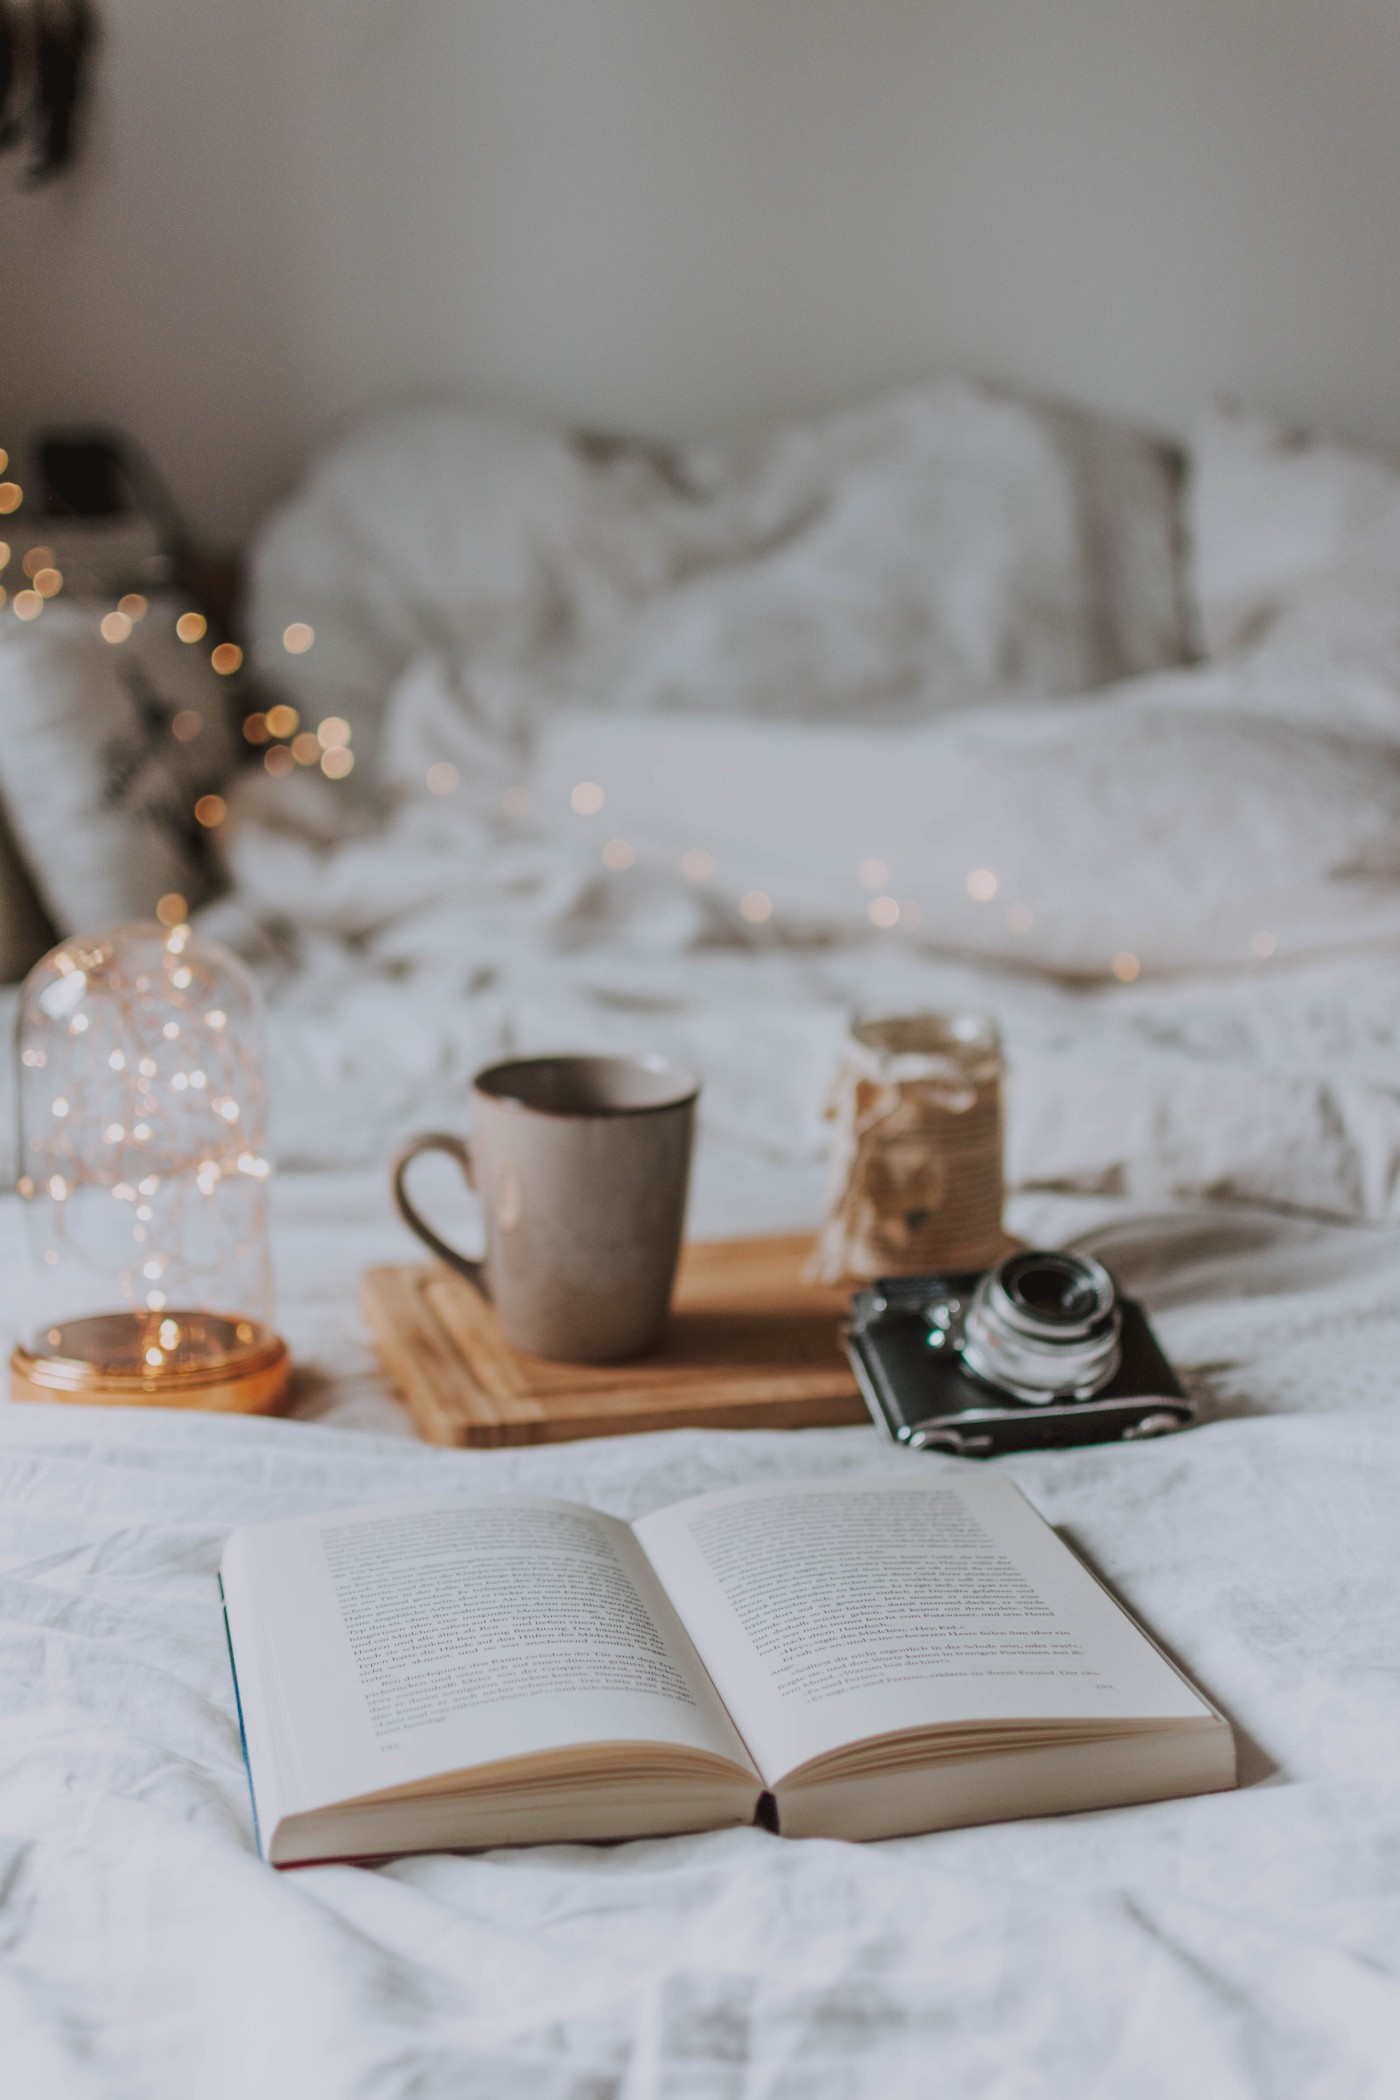 Book, open-faced on a bed with various items. A glittery light creates a magical feel next to a coffee mug on a tray and vintage camera.